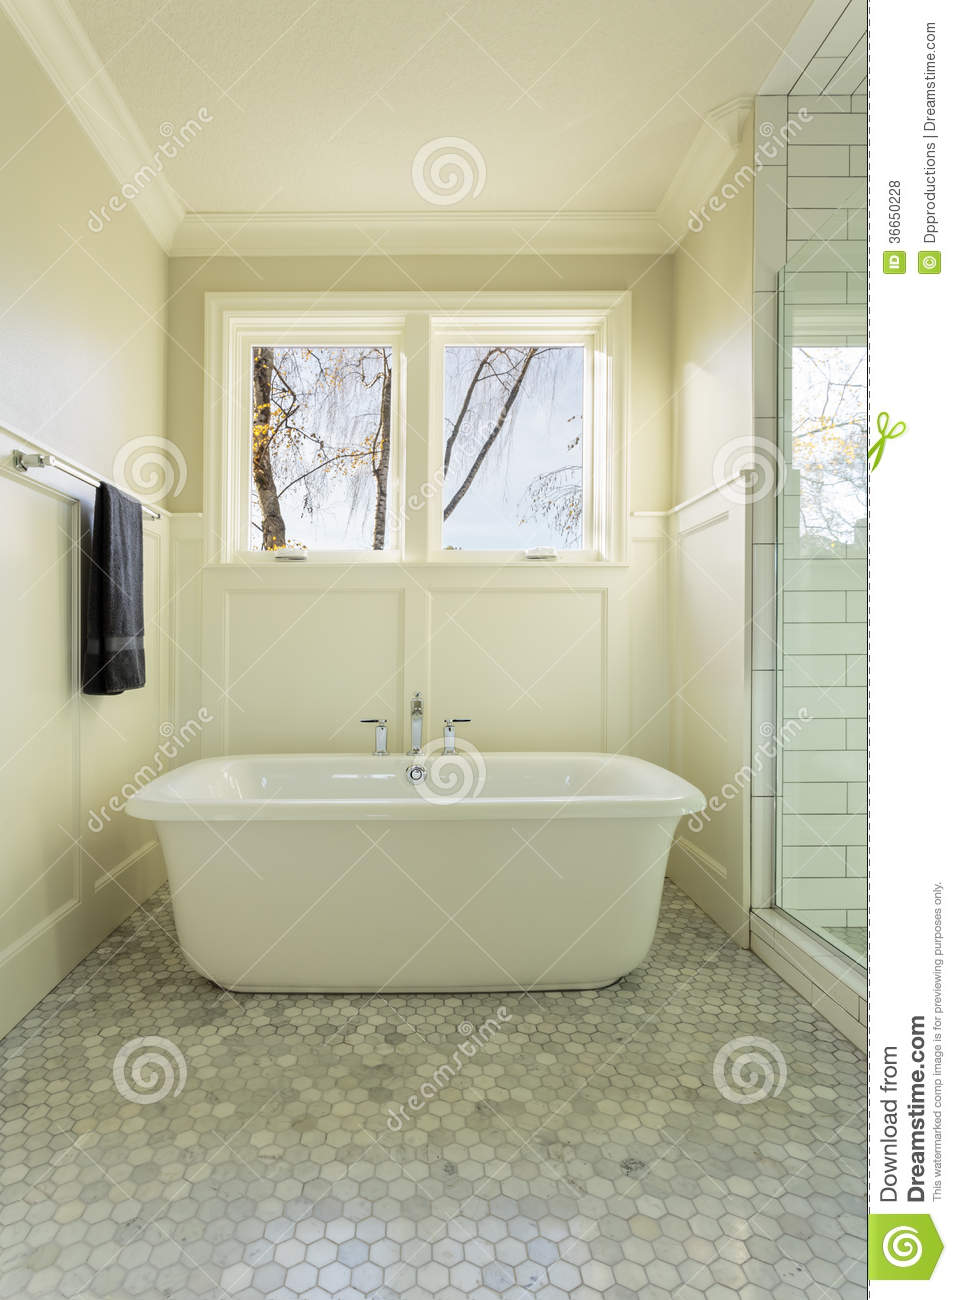 Master Bathroom Bathtub With Windows Stock Photo Image